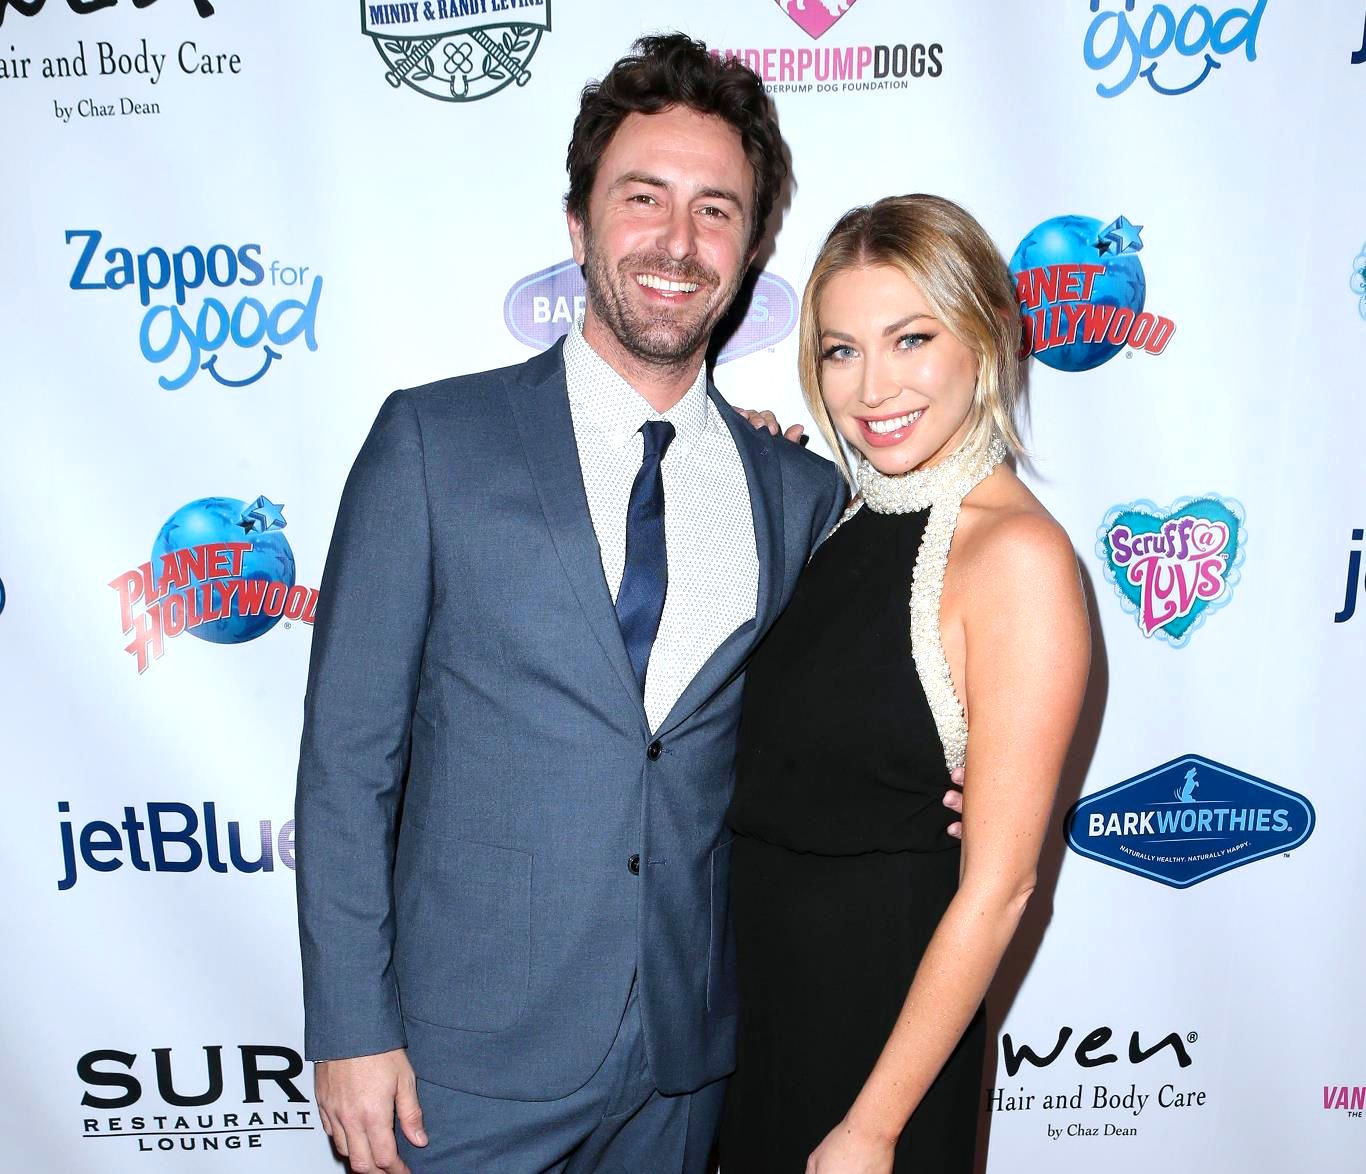 Beau Clark Explains Why Stassi Schroeder Paid the Down Payment on Their $1.7 Million Dollar Home, Plus Vanderpump Rules Couple Discusses Their Recent Quarantine Feud